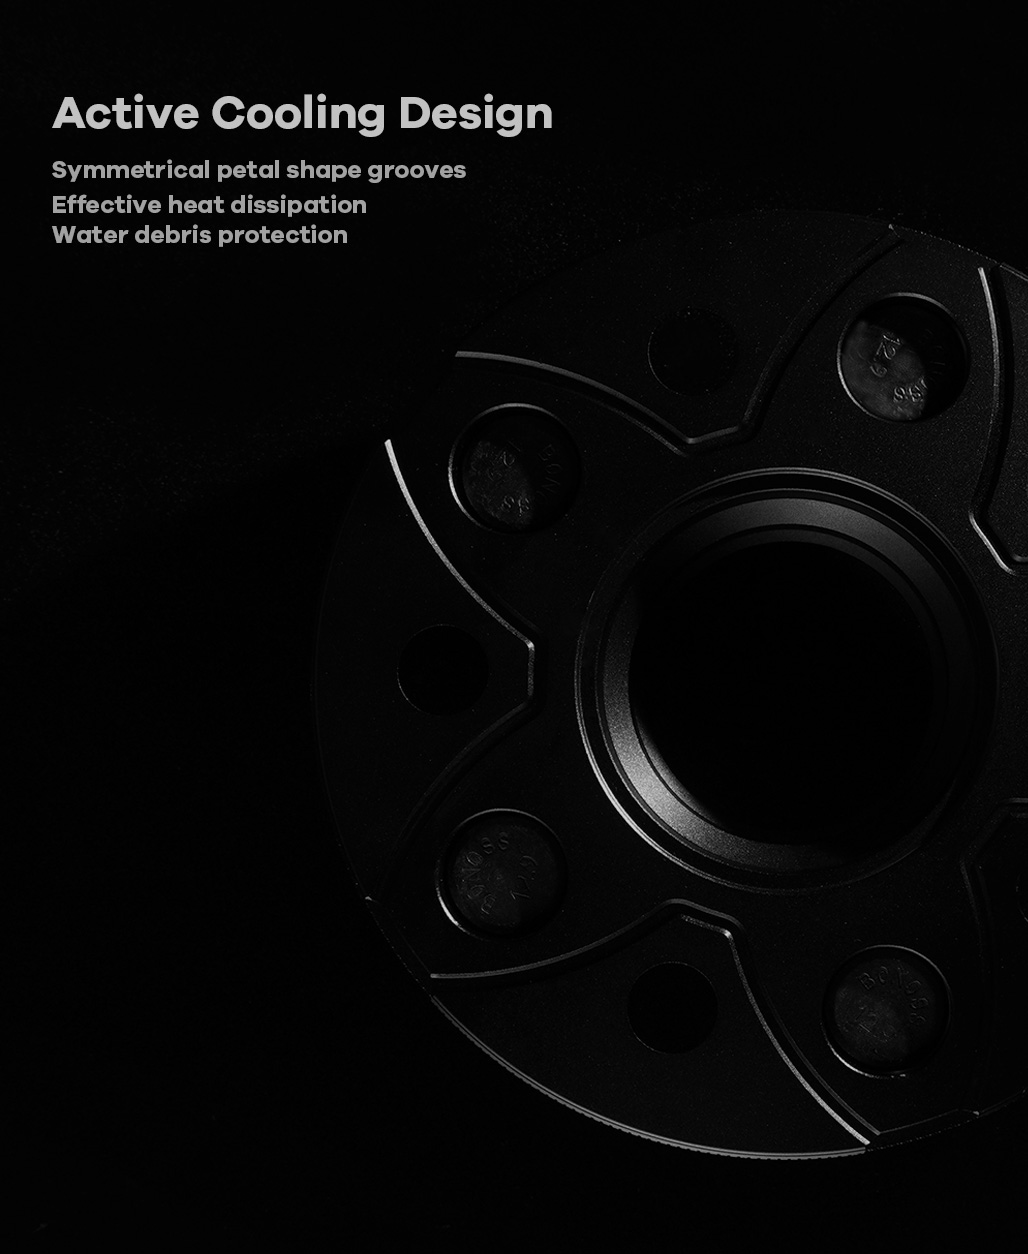 BONOSS Forged Active Cooling Wheel Spacers Hubcentric PCD5x105 CB56.6 AL6061-T6 for Holden Trax 2013-2021 (3)